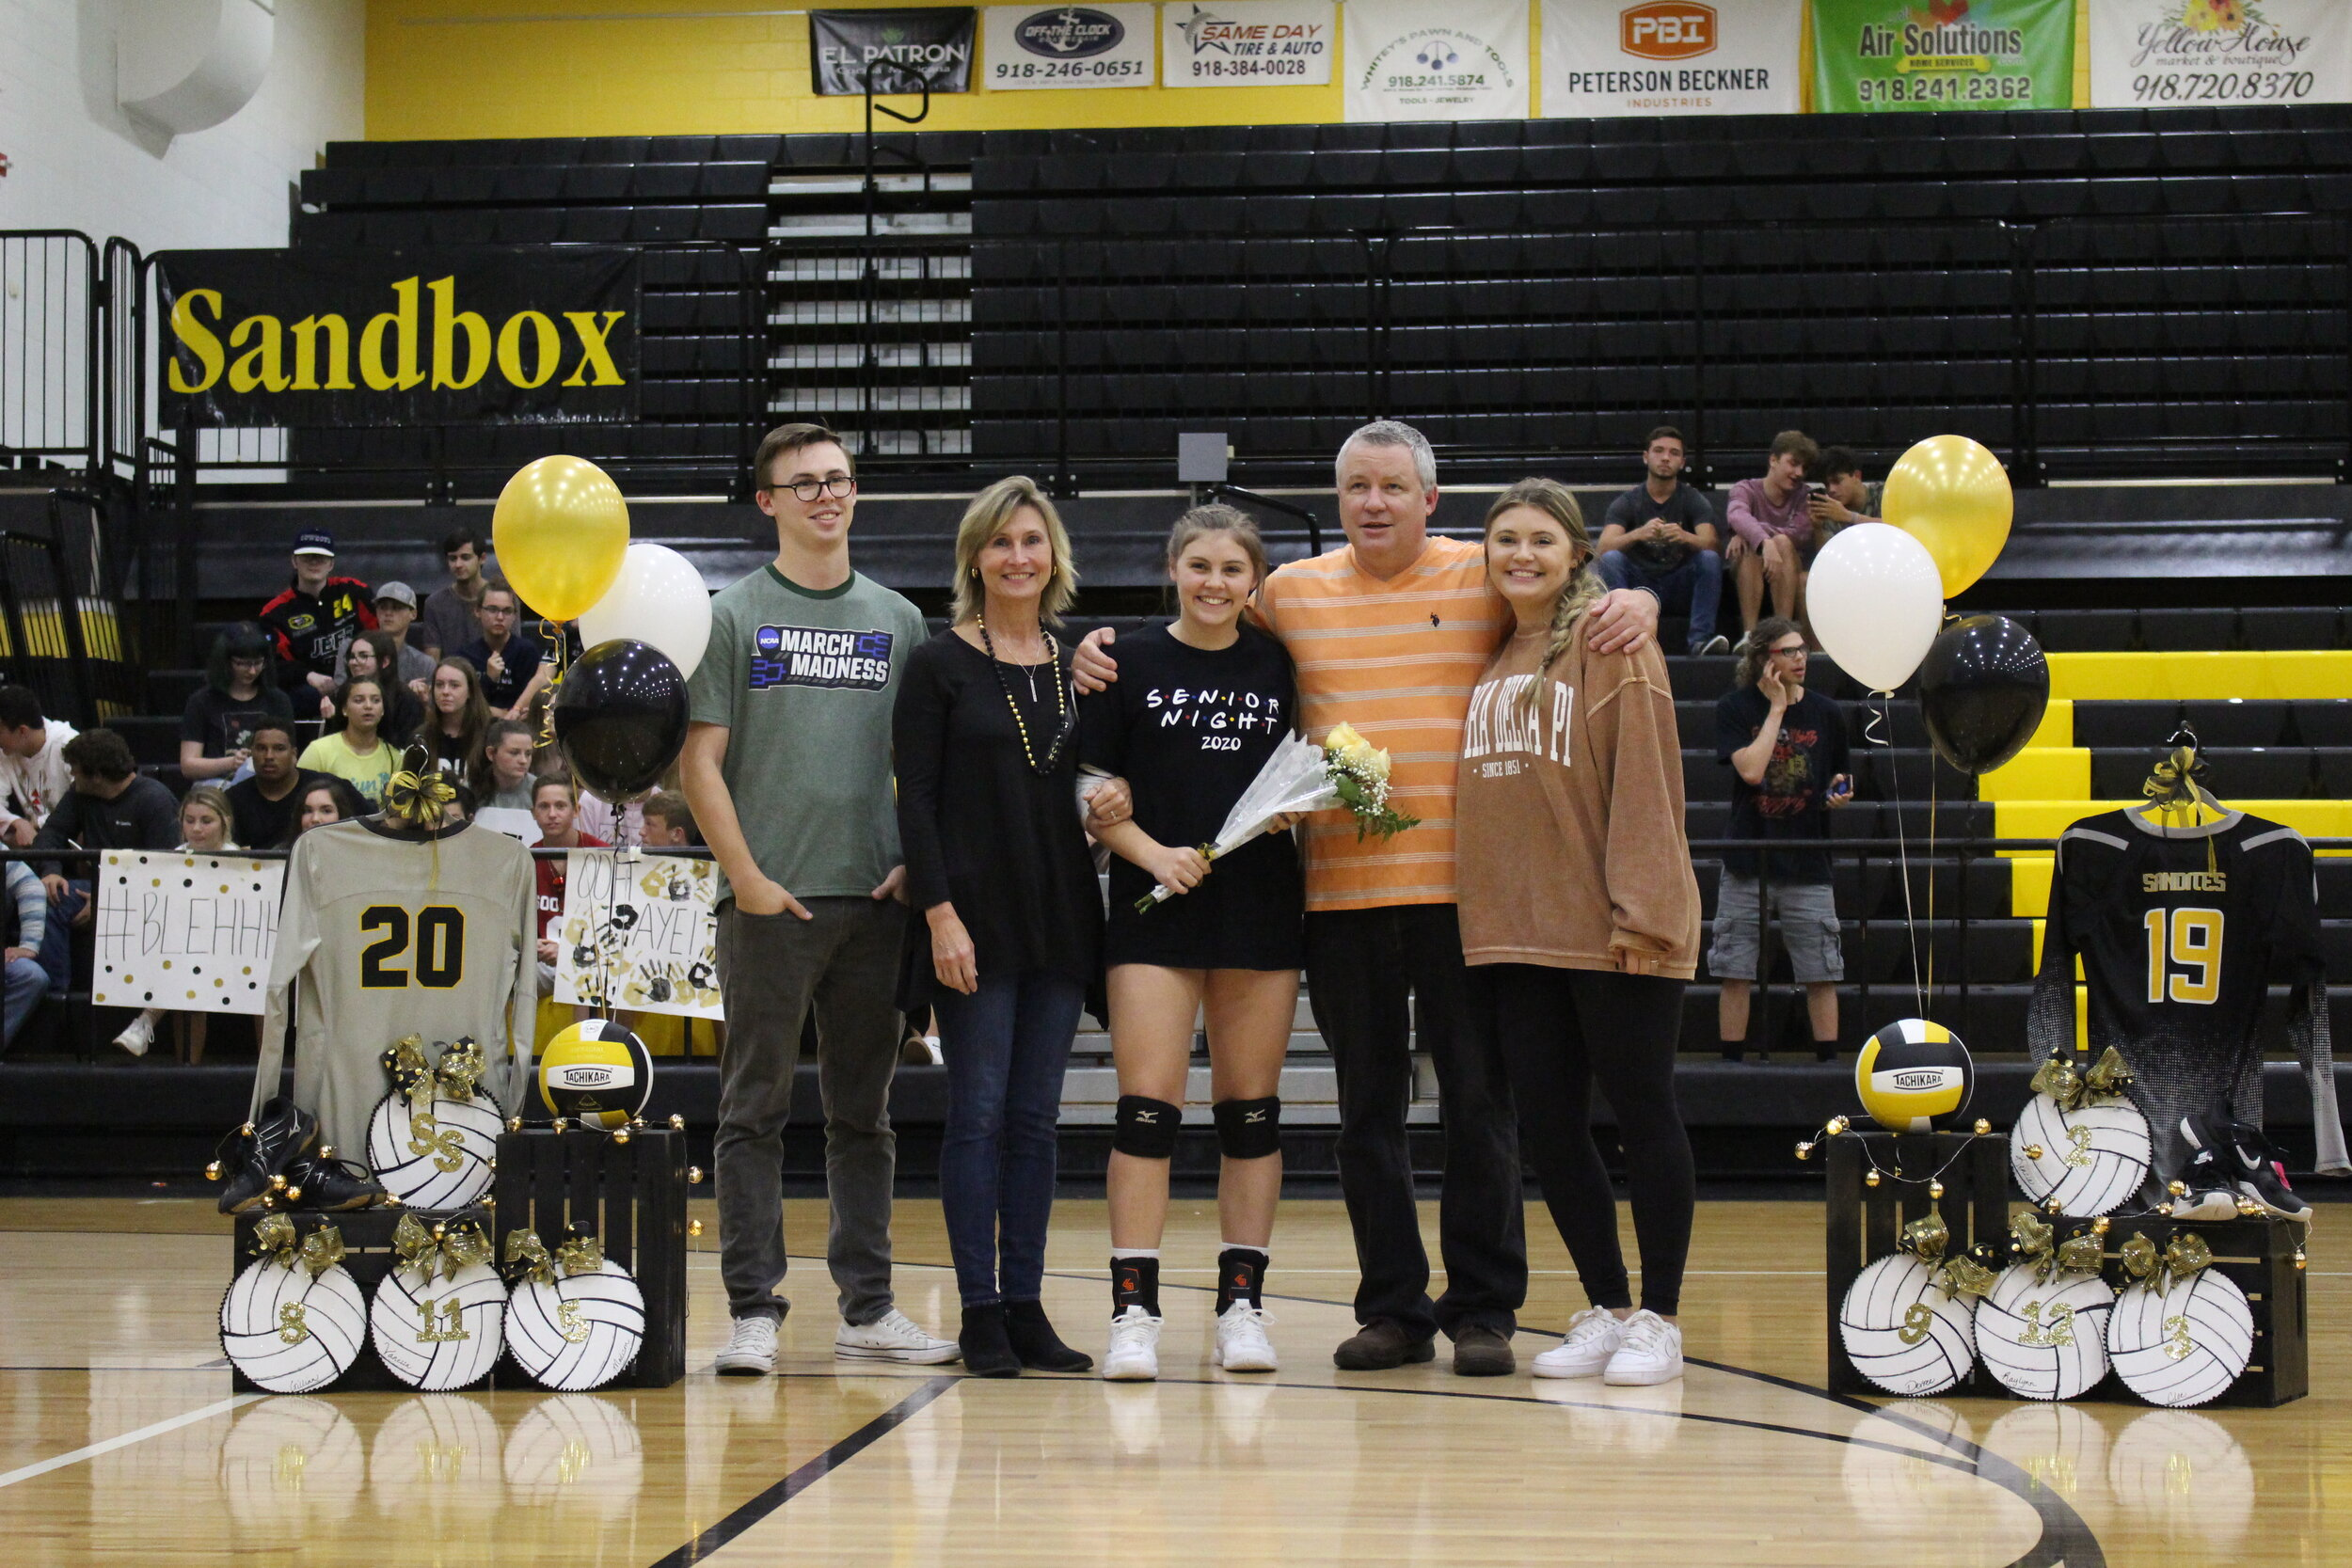 """Cloe Campfield (OSH, DS) escorted by parents Tripp and Andrea Campfield, and siblings Troy and Dayne Campfield. She has played Sandite Volleyball for 6 years, is a National Honor Society and Student Council member, and a manager for the Boys' Basketball Team. She plans on attending Oklahoma State University to major in history, with the goal of being a High School History Teacher.  Campfield's favorite volleyball memory is beating Union her junior year.  """"Thank you to my fellow seniors for being there through every up and down."""""""